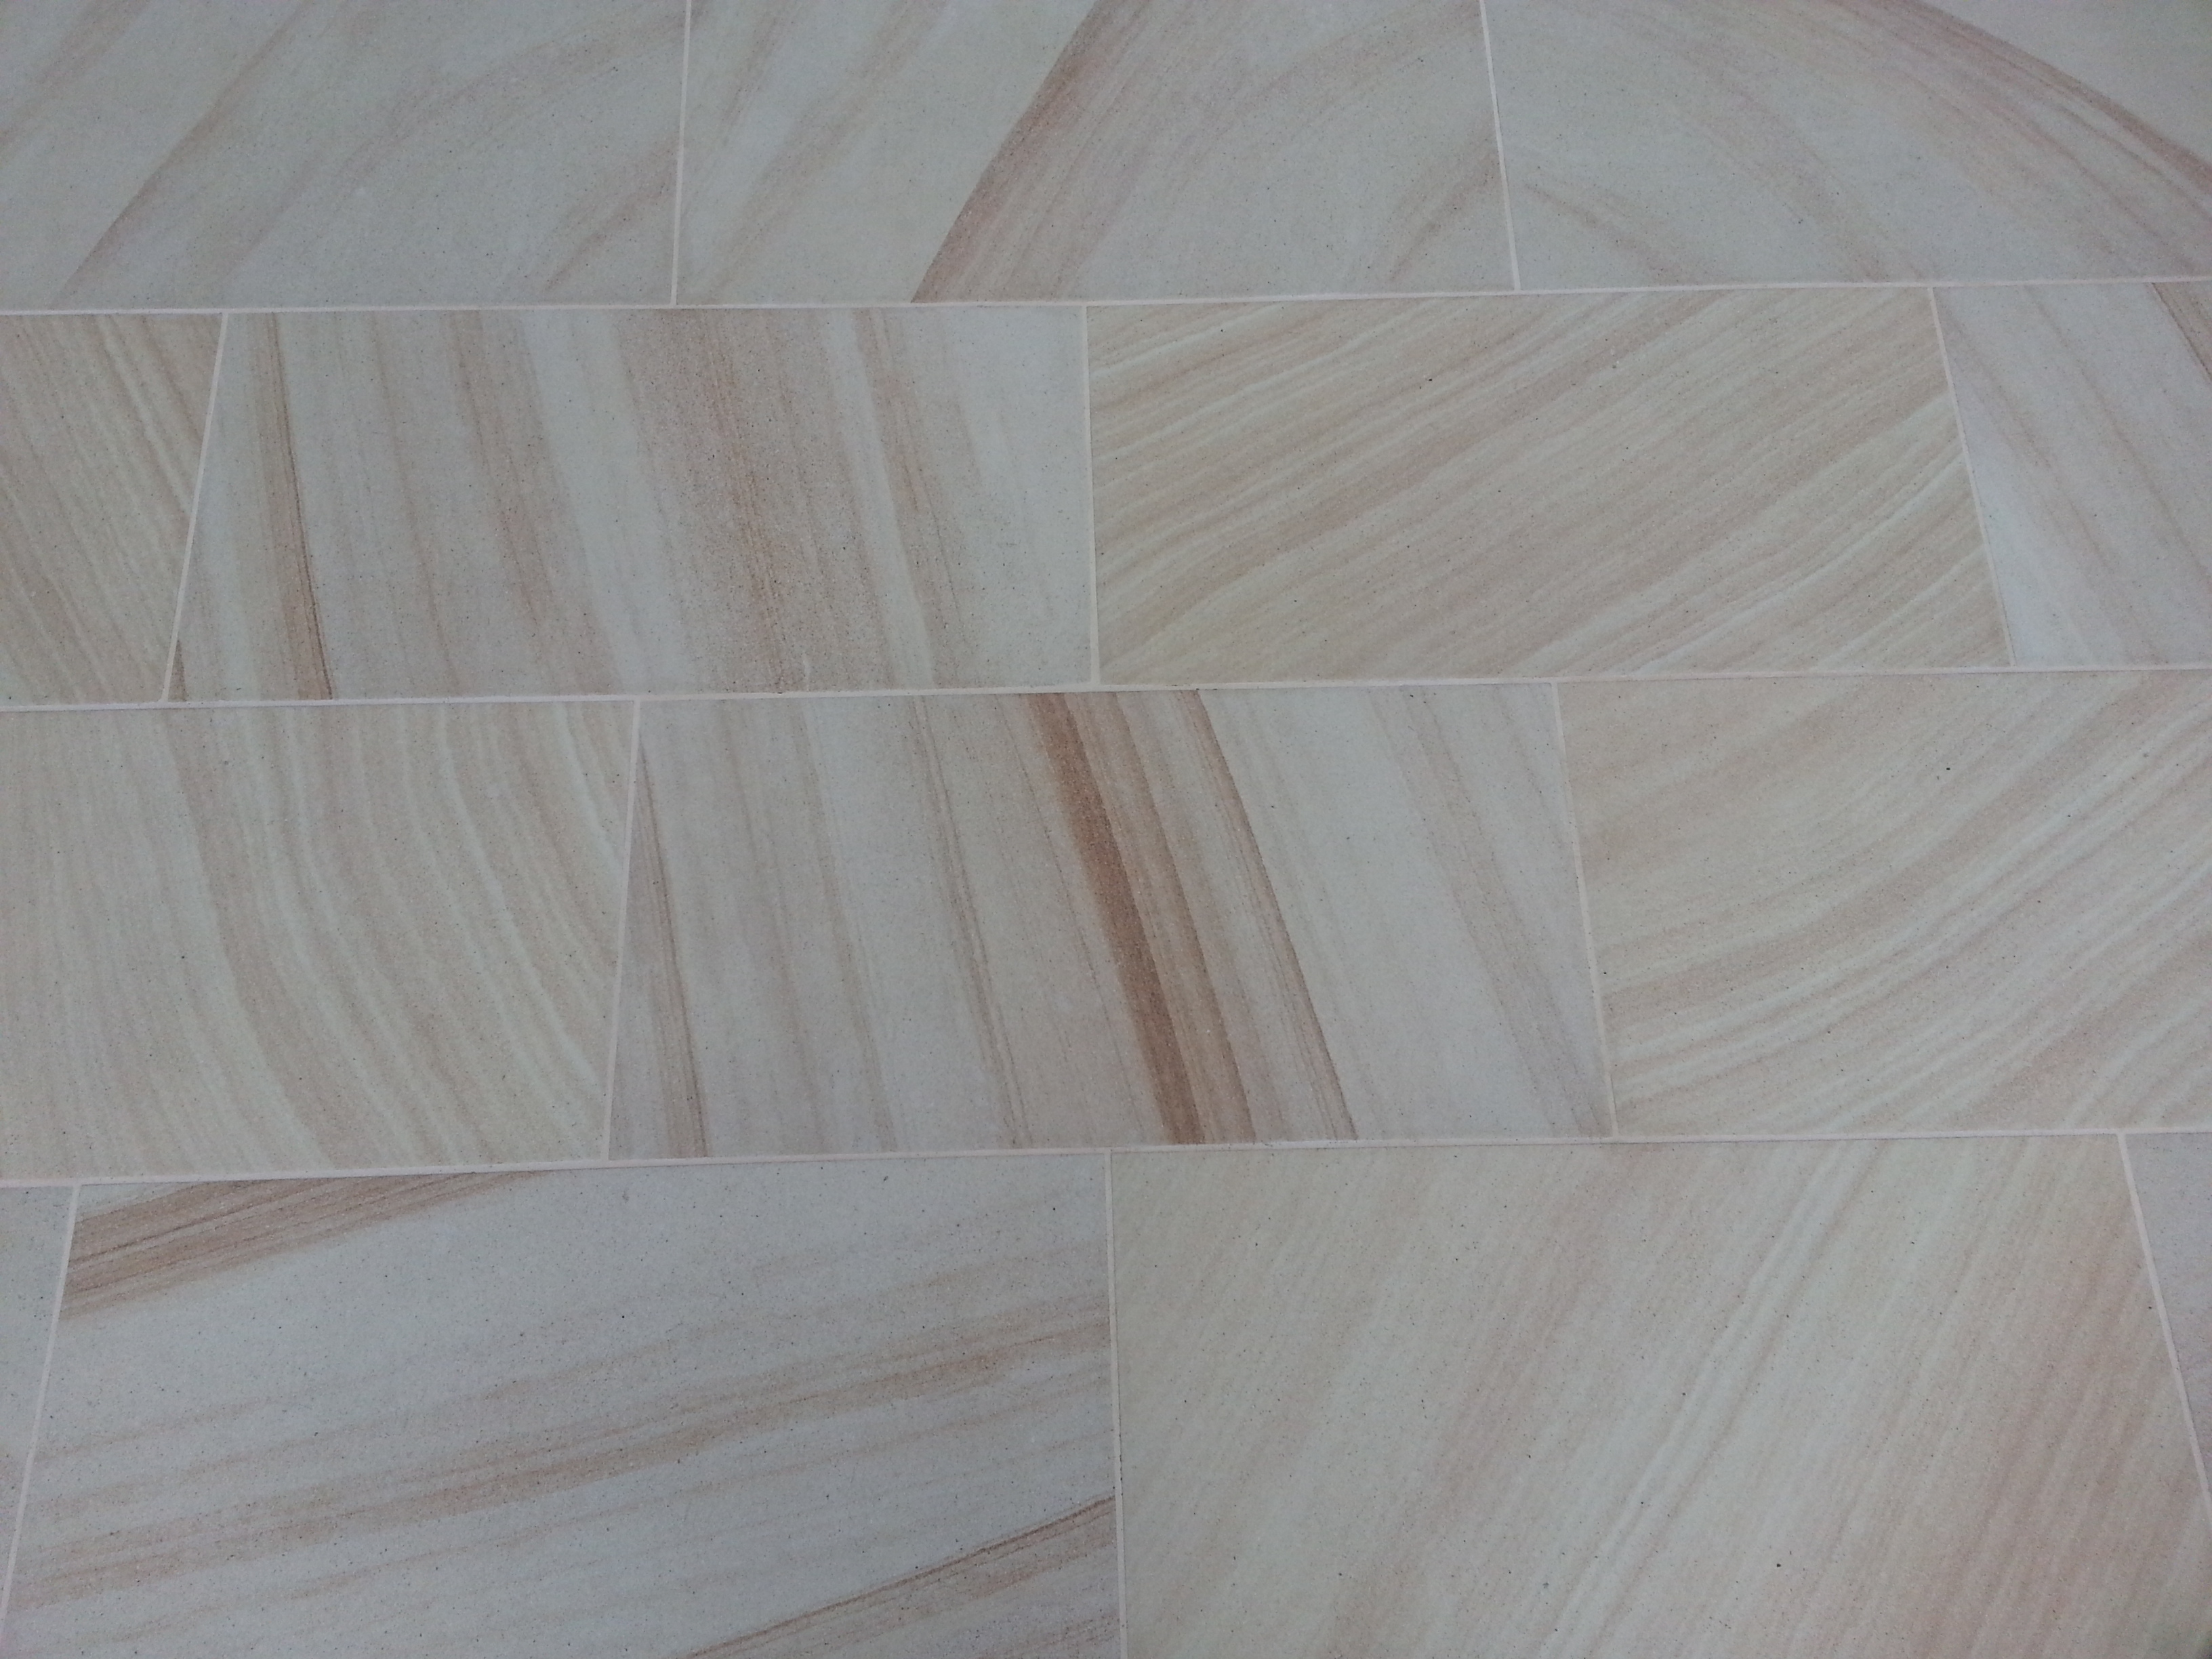 Kitchen Floor Tiles Sydney Sandstone External 600mmx300mm Budget Tiles Sydney